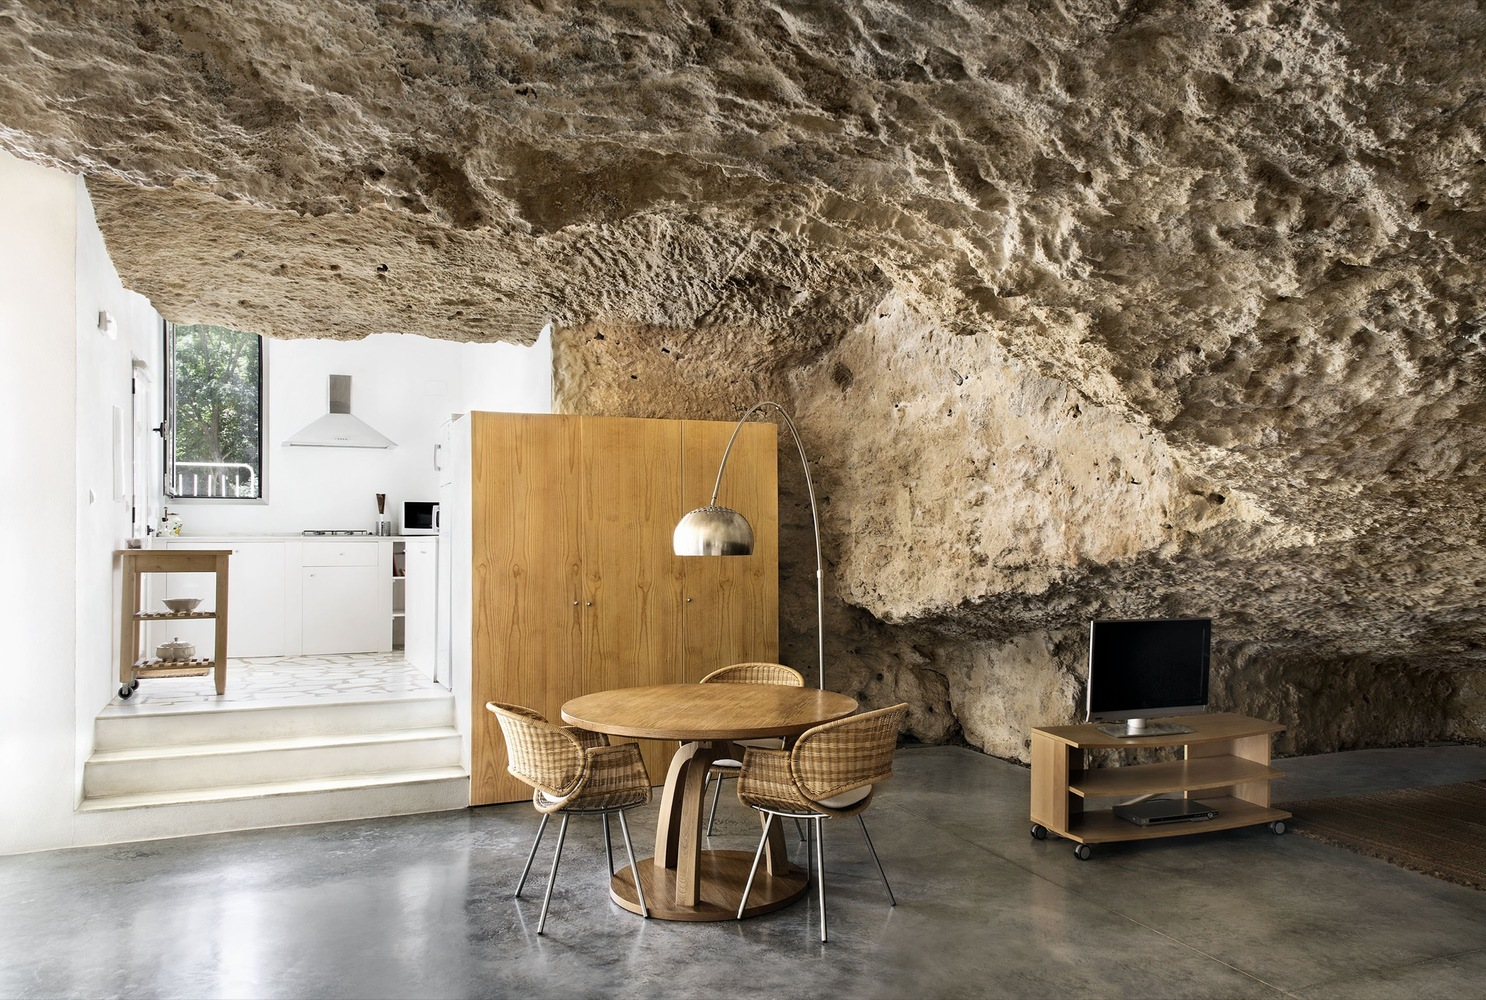 8_House Cave_UMMO Estudio_Inspirationist